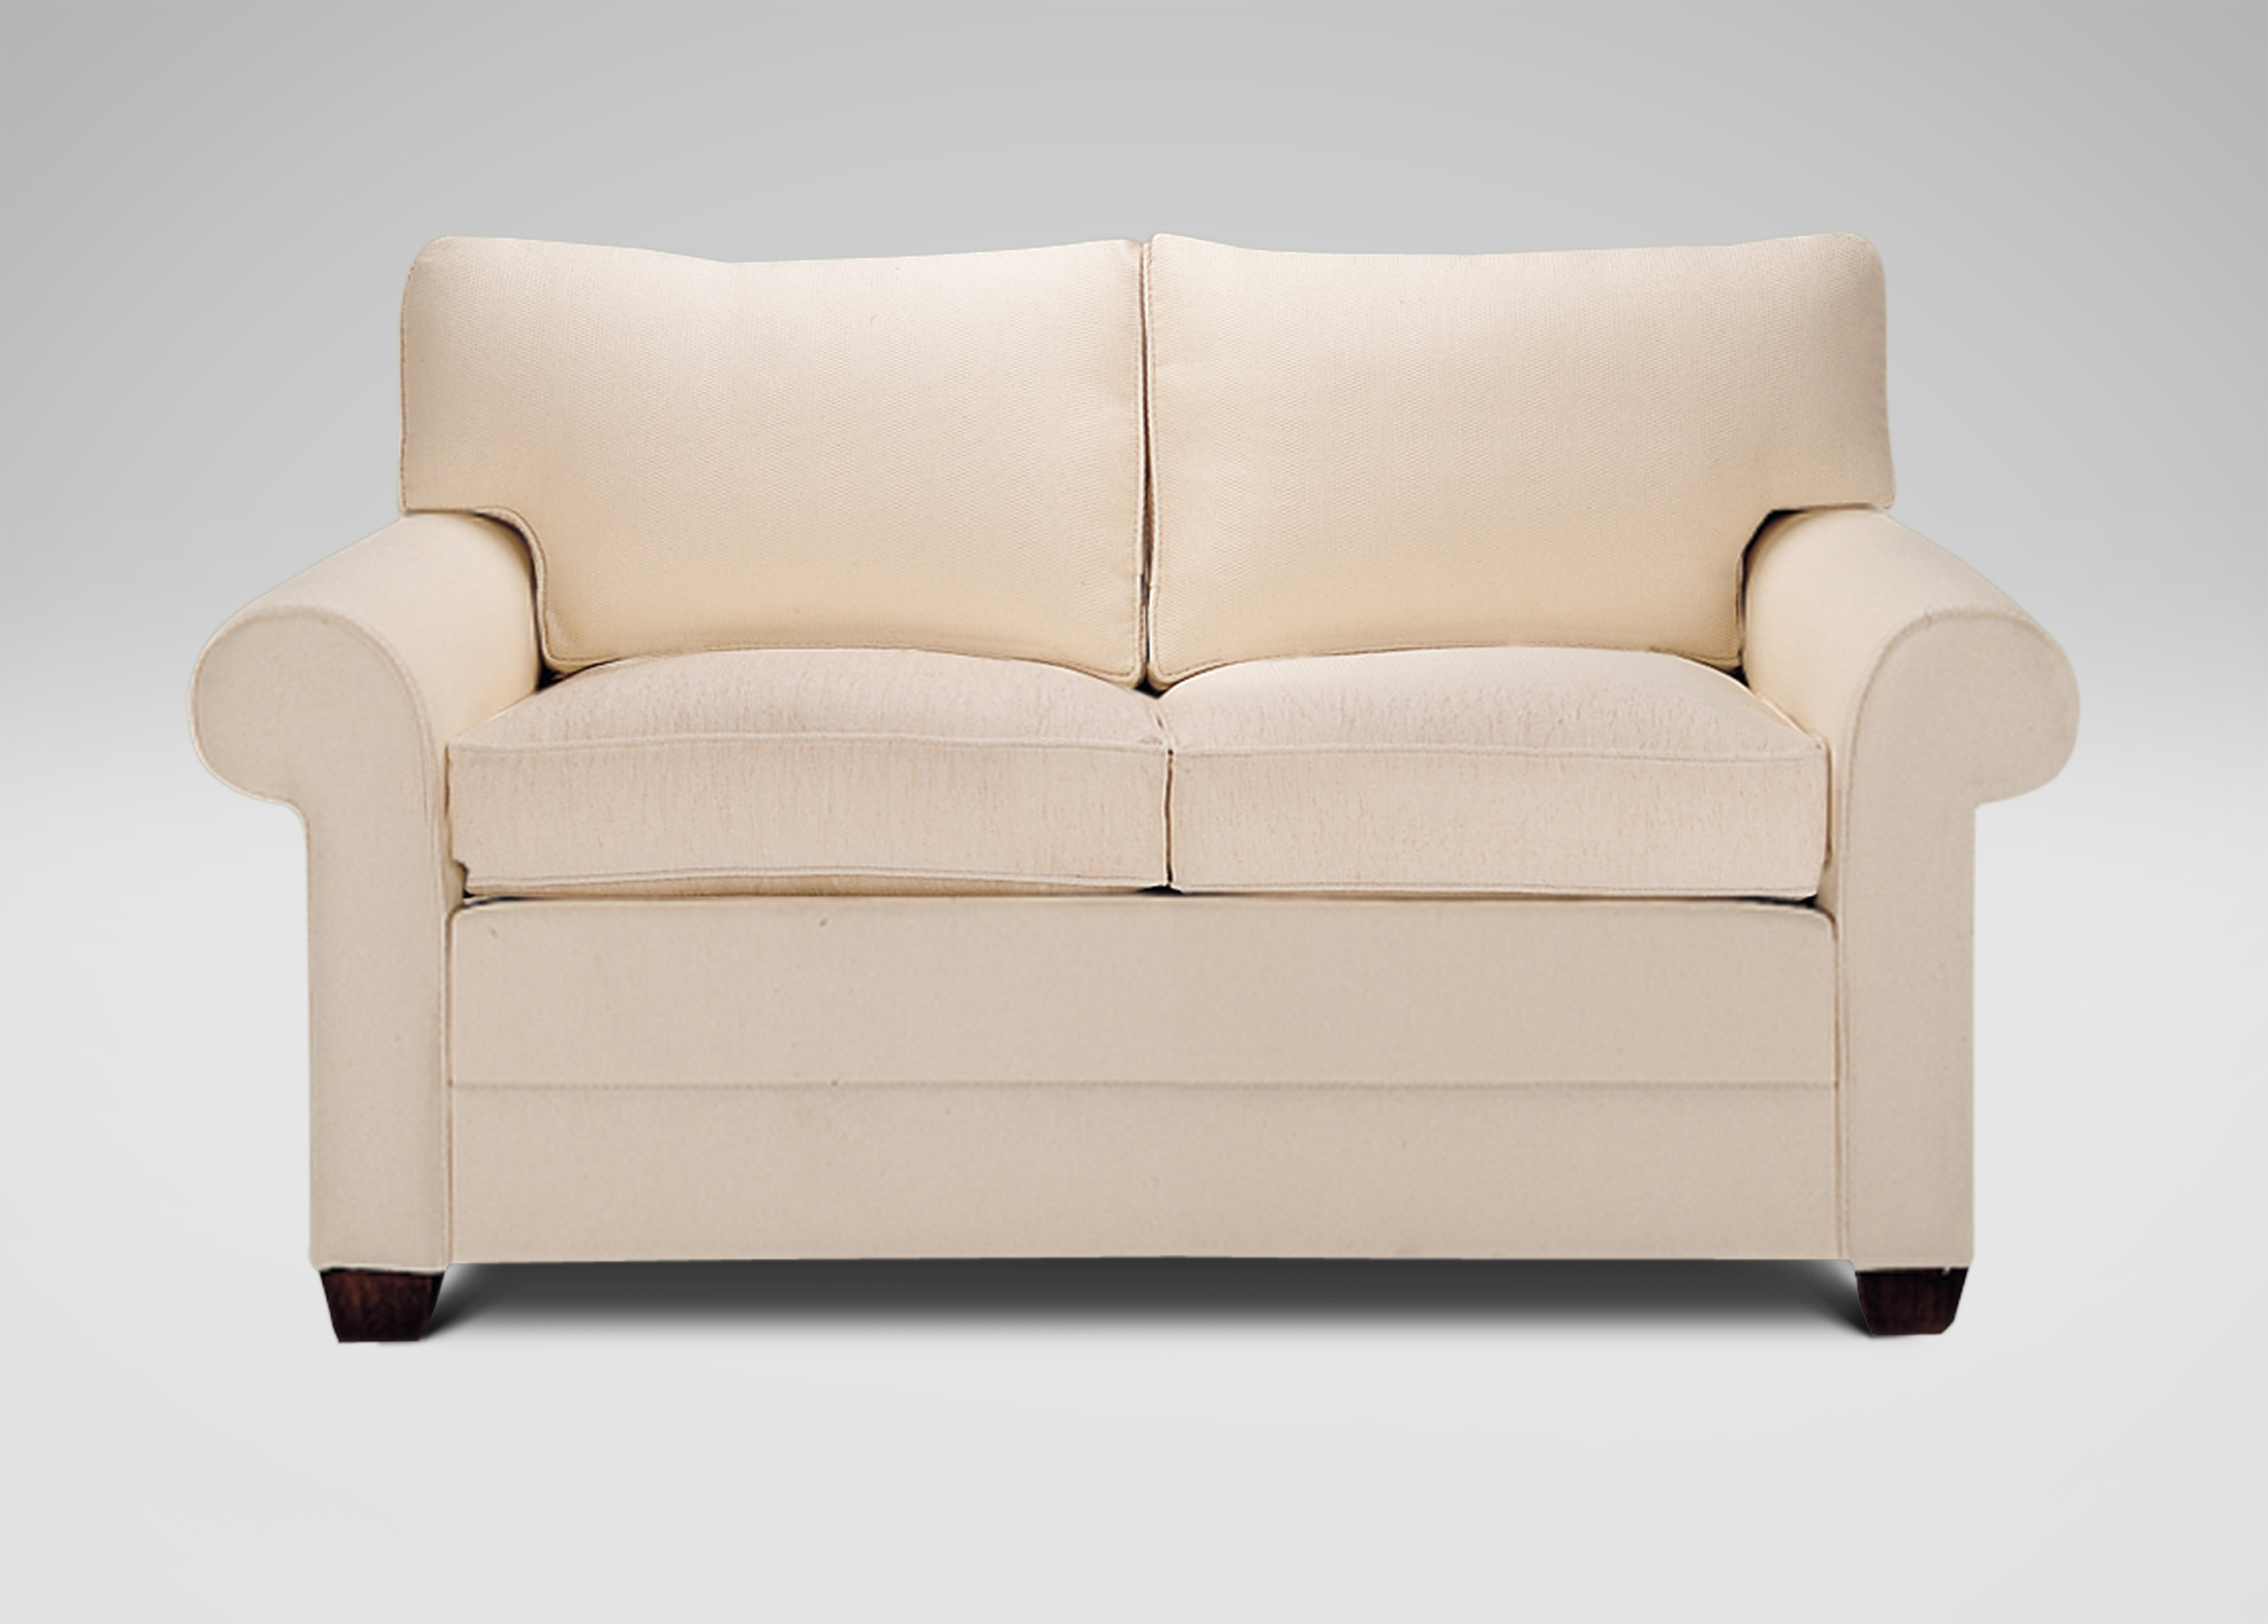 Bennett Roll Arm Loveseat – Ethan Allen Intended For 2018 Ethan Allen Sofas And Chairs (View 1 of 15)